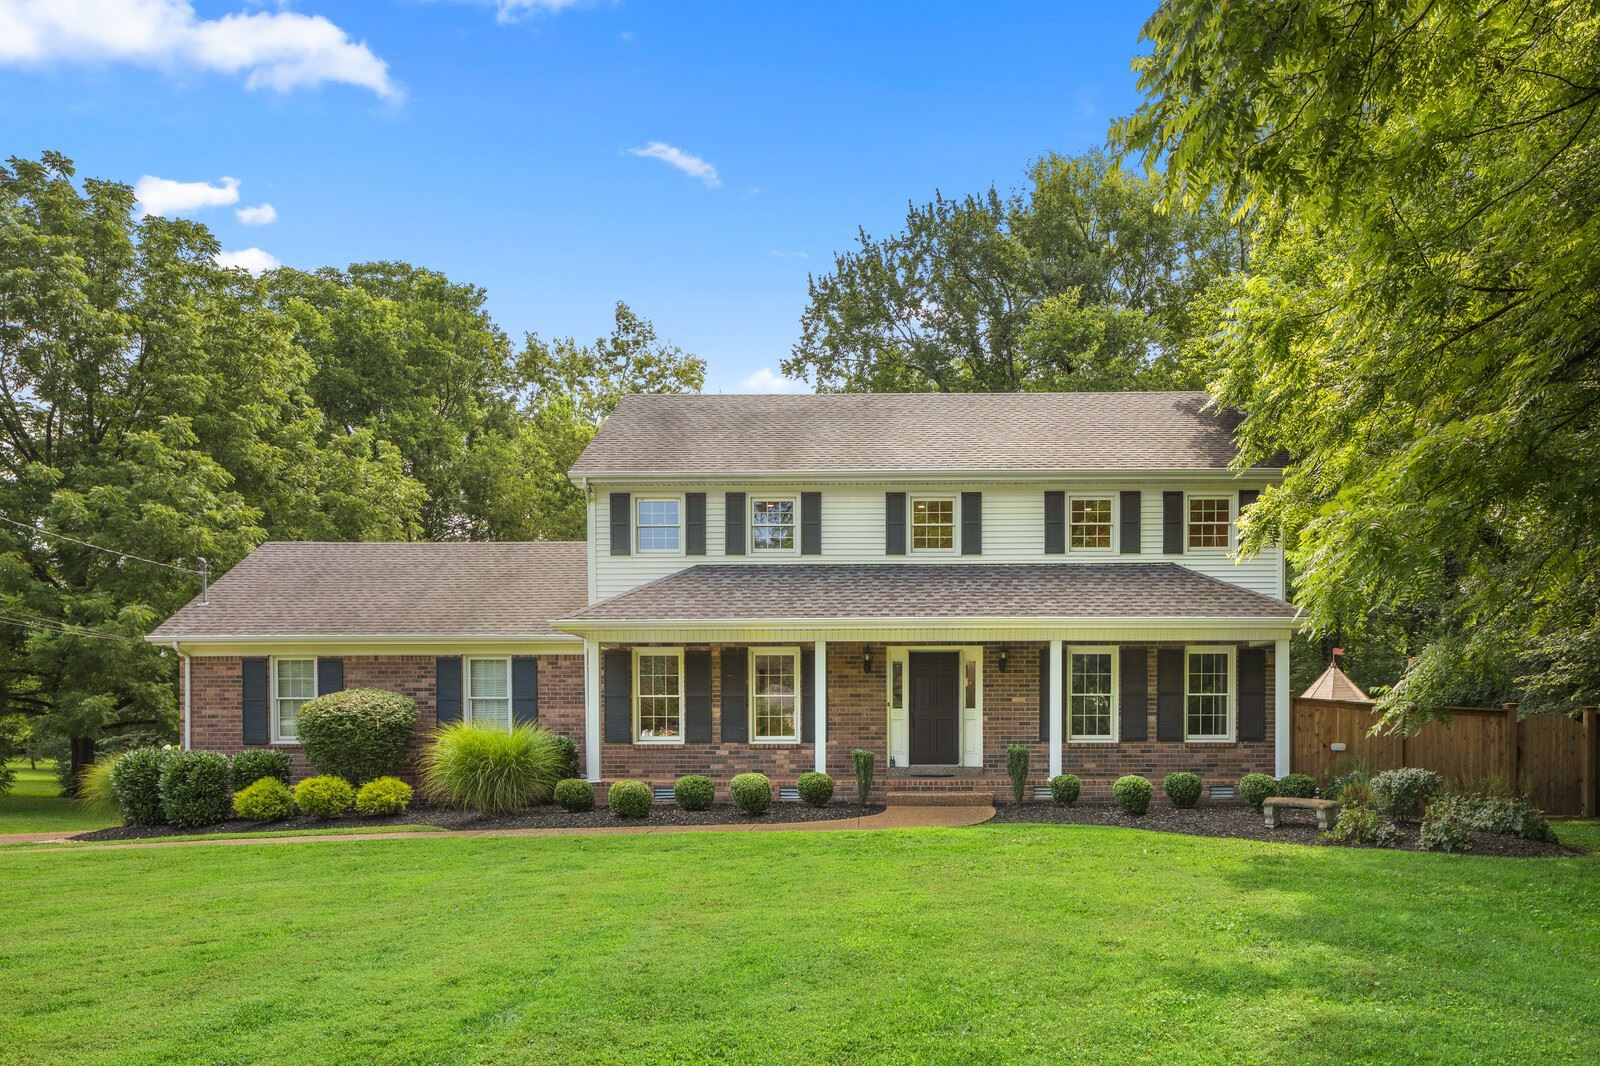 Photo of 761 Overbrook Point Ct, Brentwood, TN 37027 (MLS # 2176707)